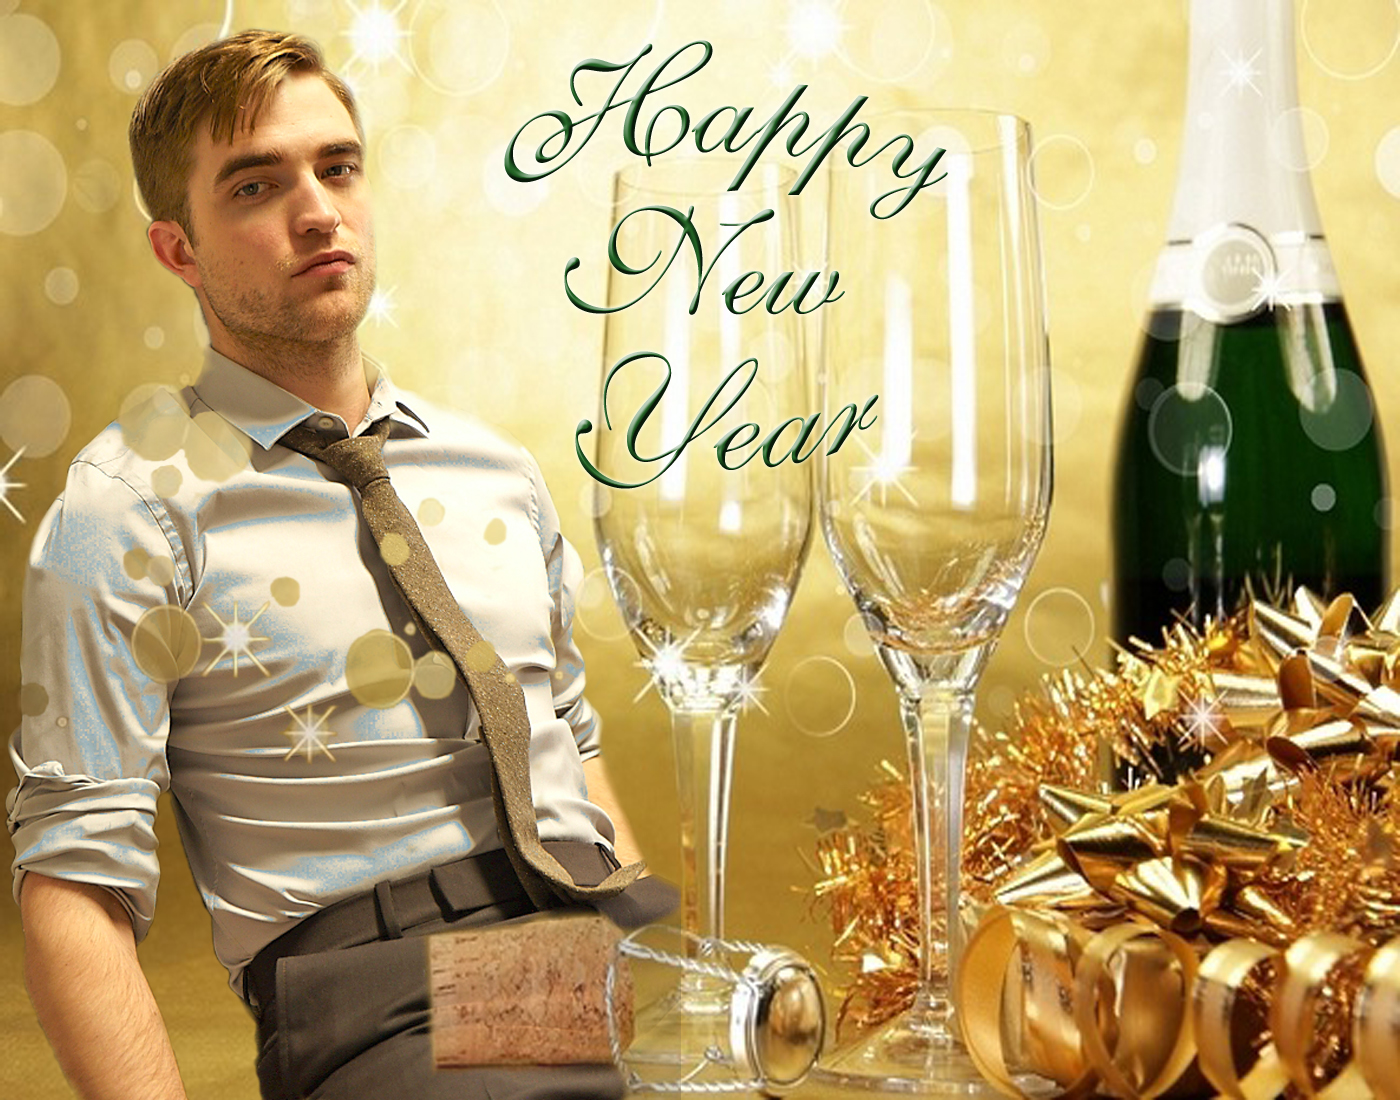 http://2.bp.blogspot.com/-2cdLsnwsVuo/Tv-cTVwZRWI/AAAAAAAAFRk/UthYrG5i1FM/s1600/Robert+Pattinson+New+Years+2012.jpg